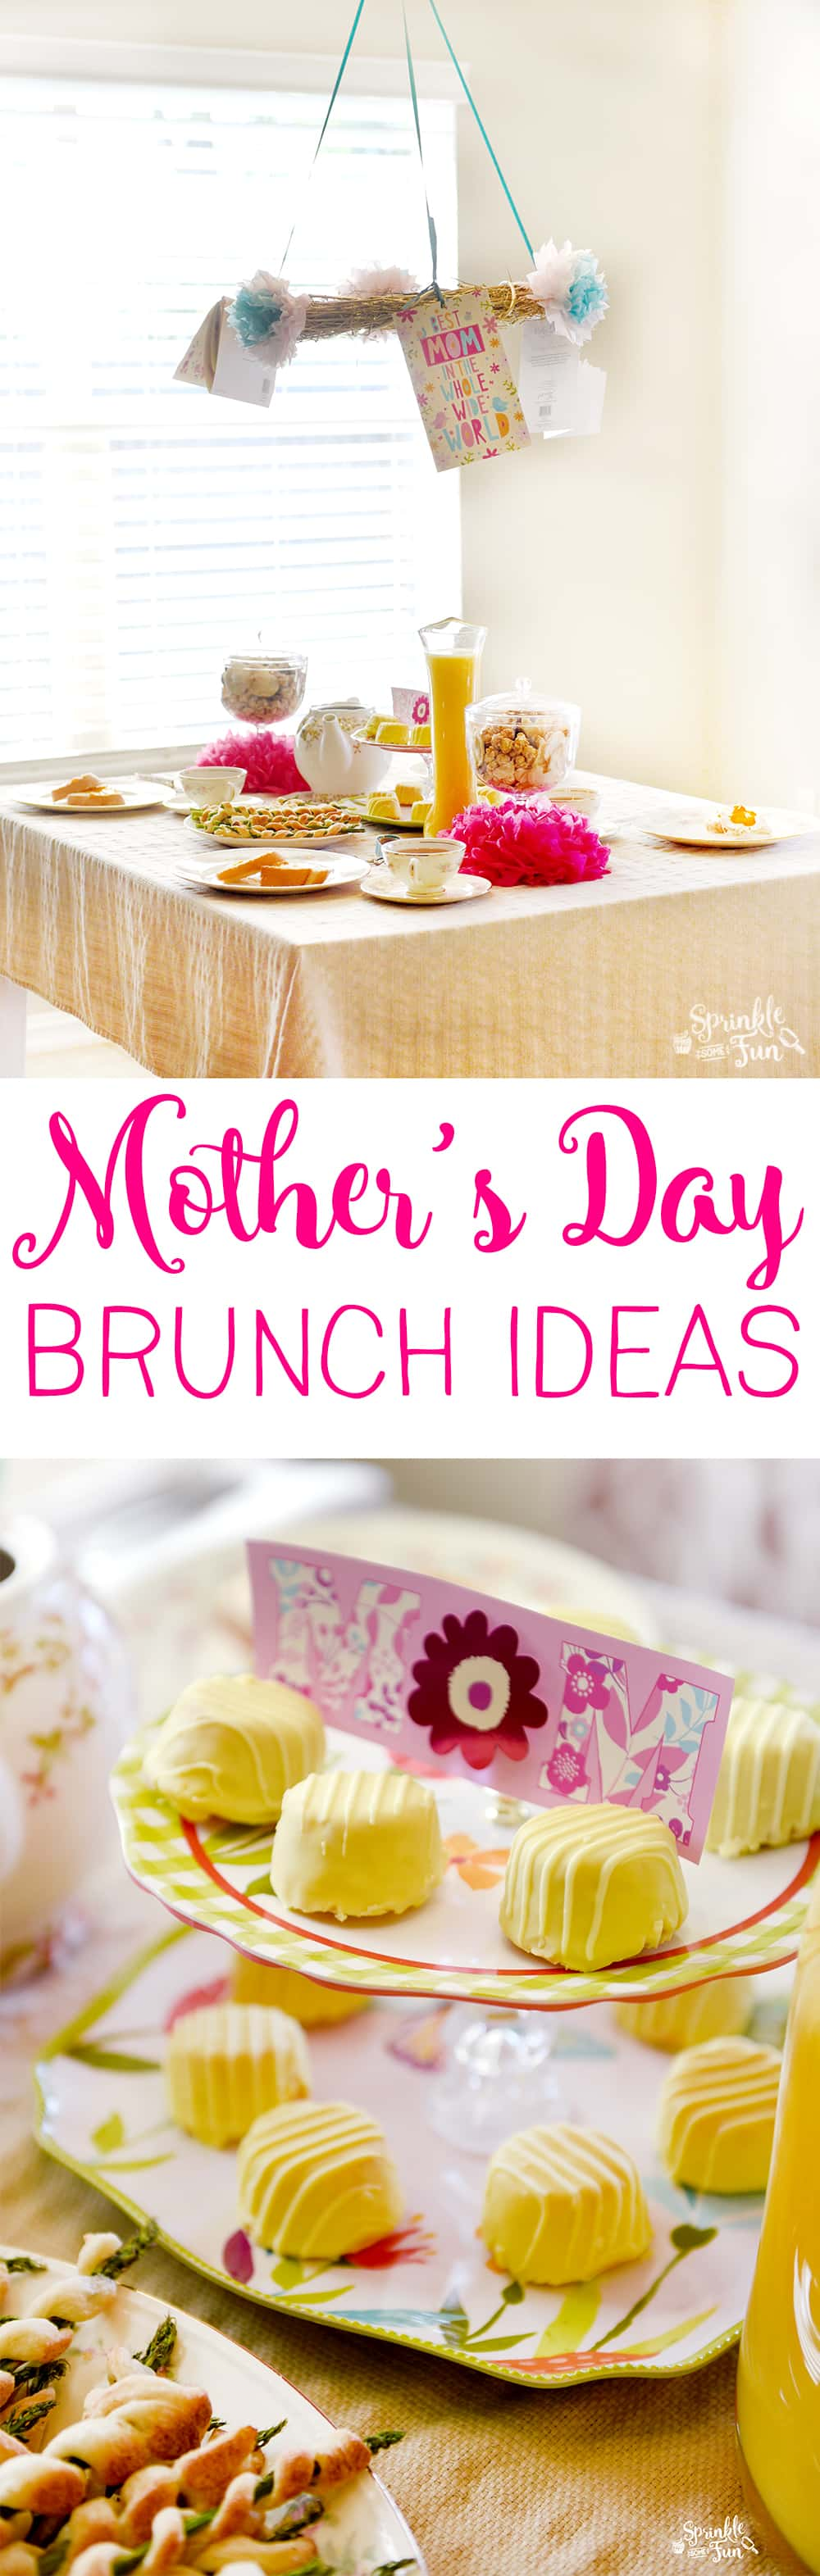 A Mother's day brunch is the perfect get-together to celebrate the moms in your life!  This brunch is easy and frugal.